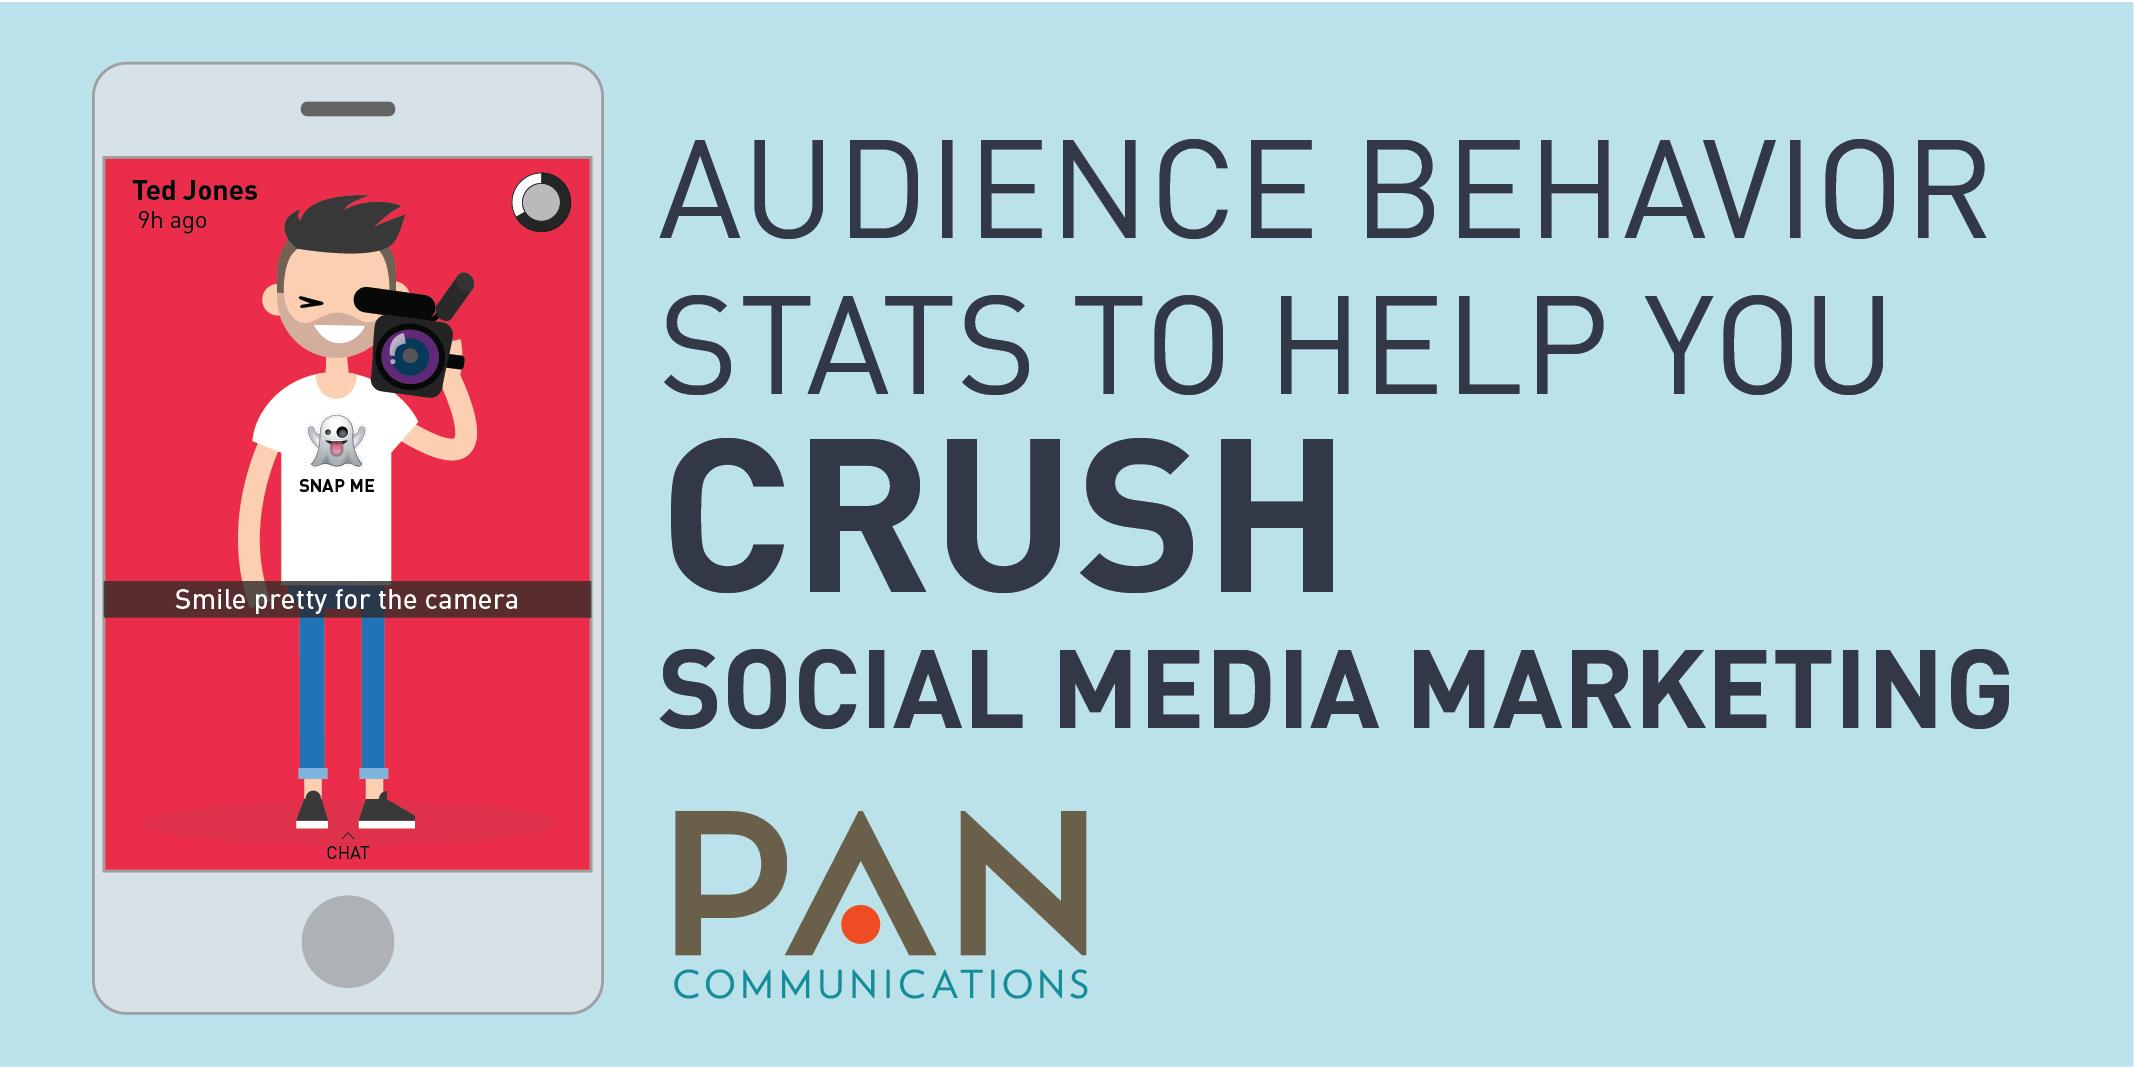 Audience Behavior Stats to Help You Crush Social Media Marketing